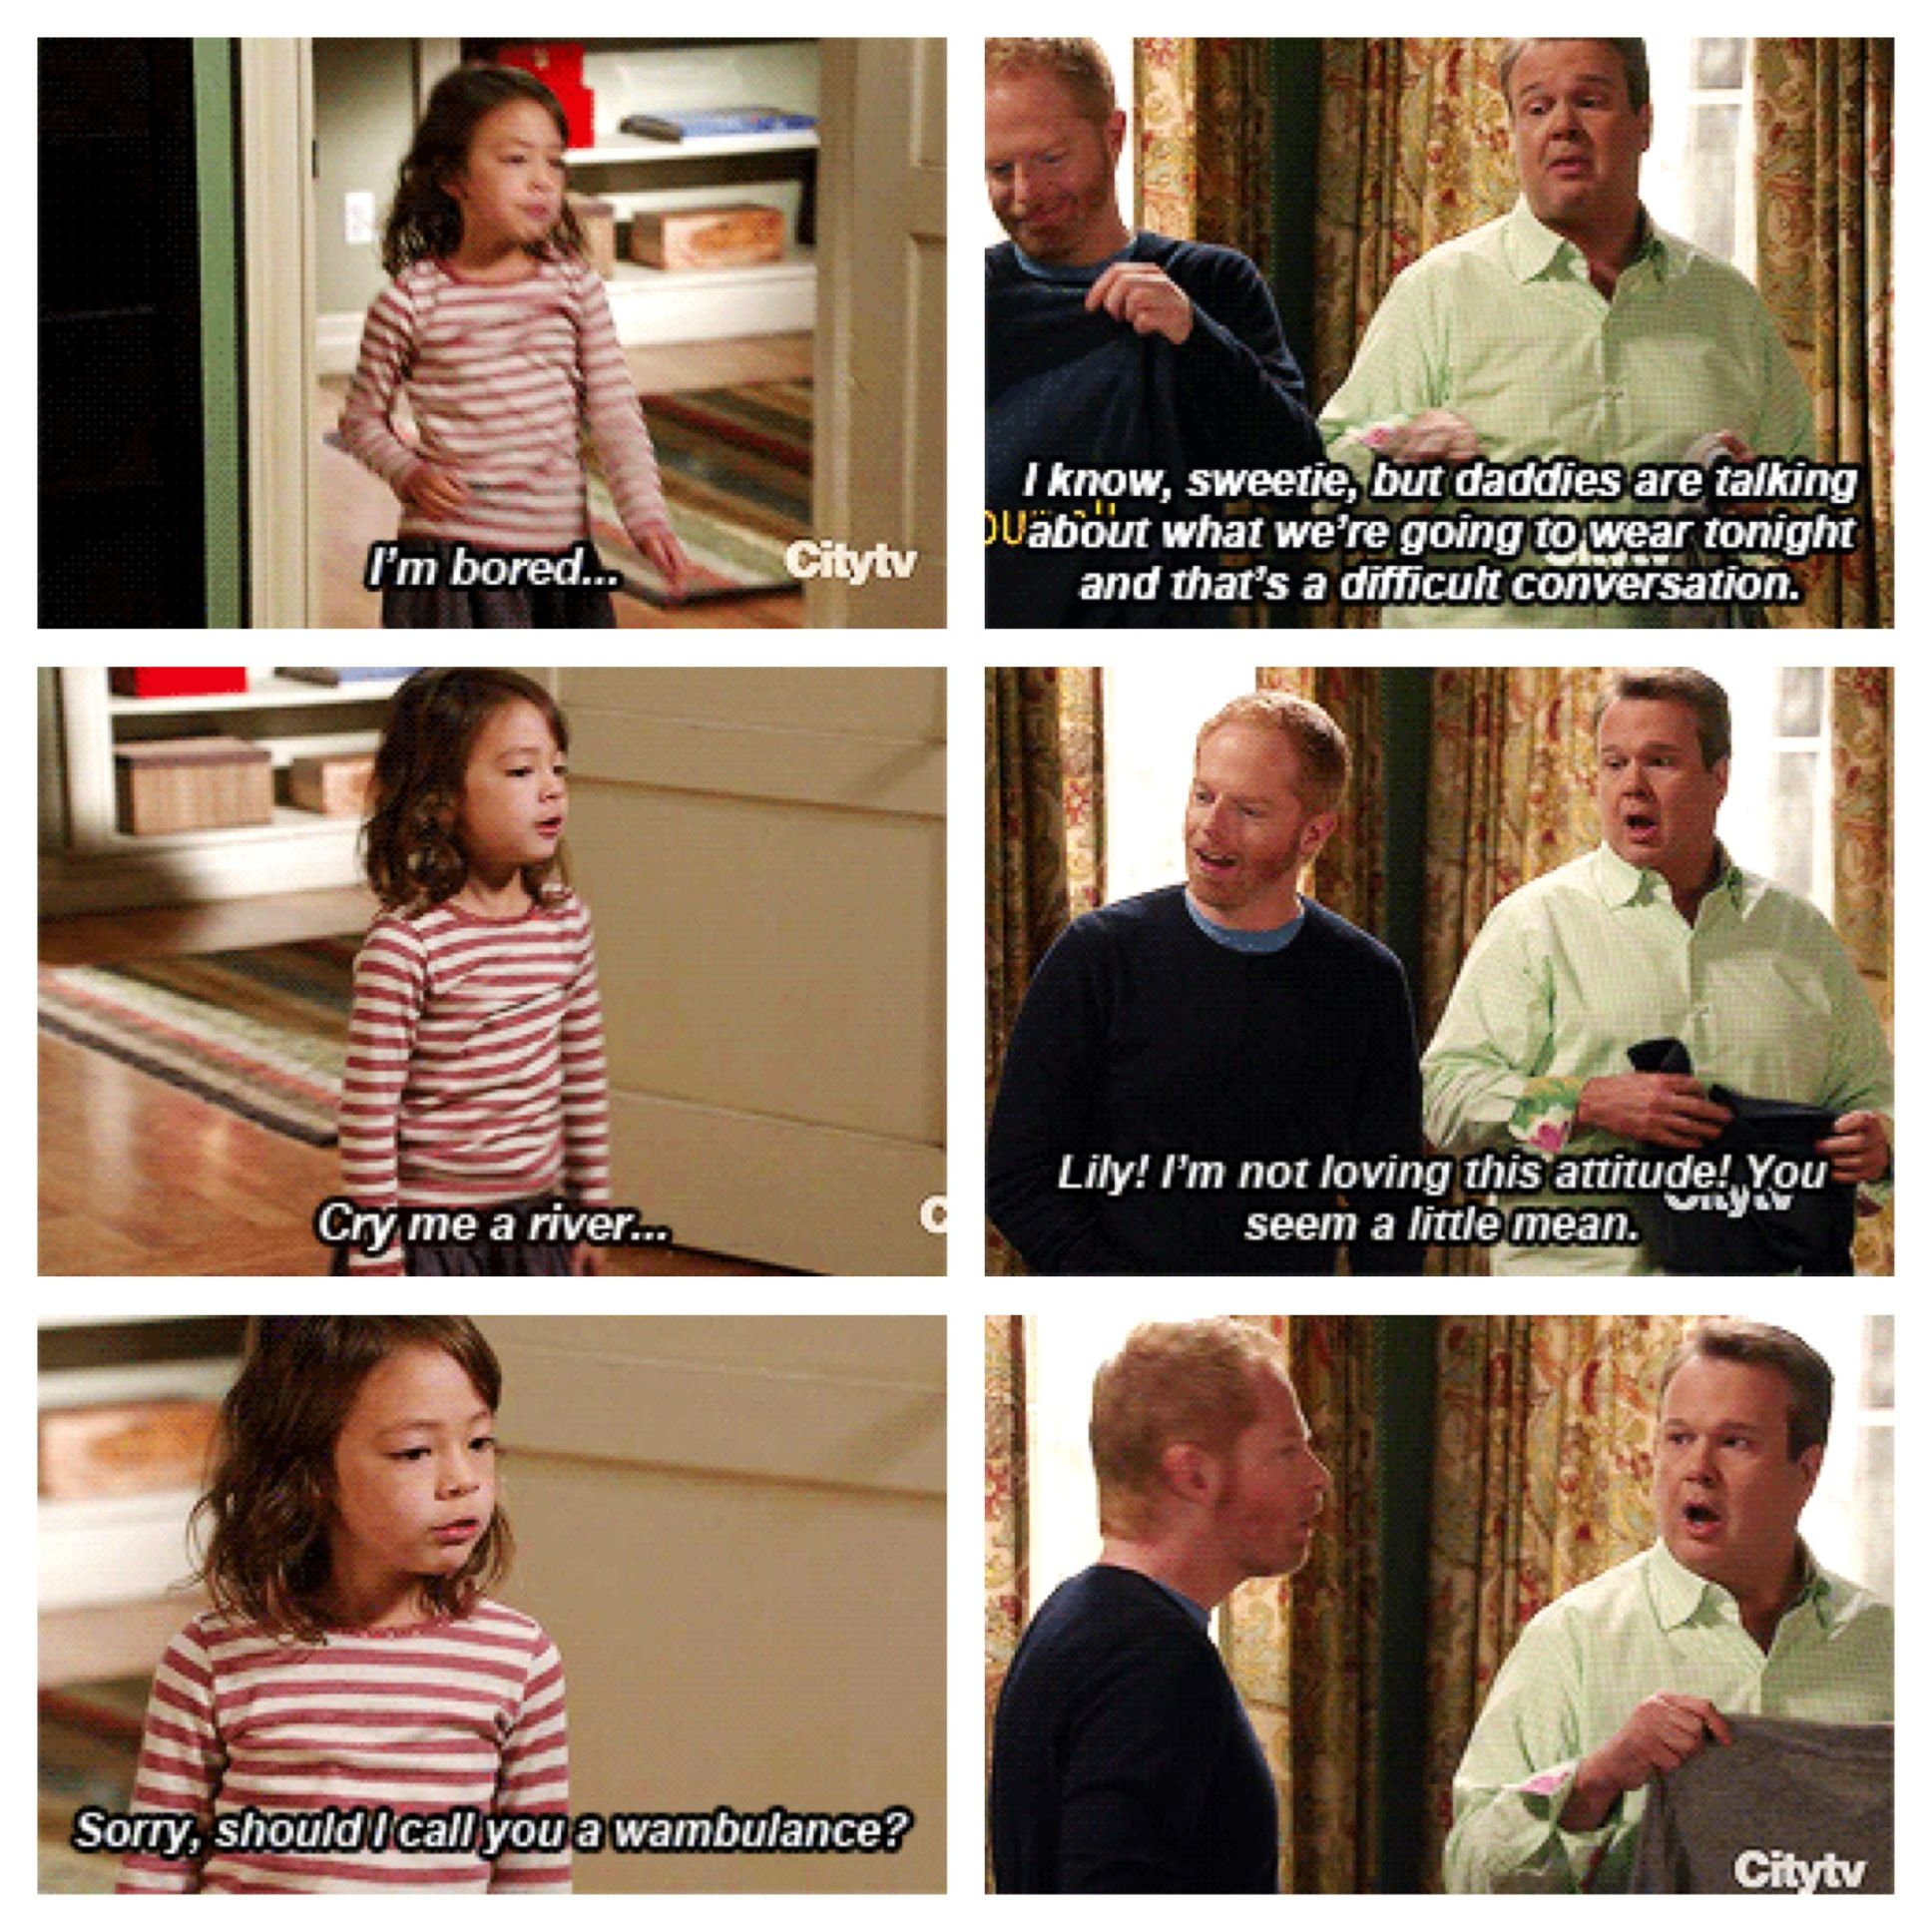 Lol haha she learned from the best: claire